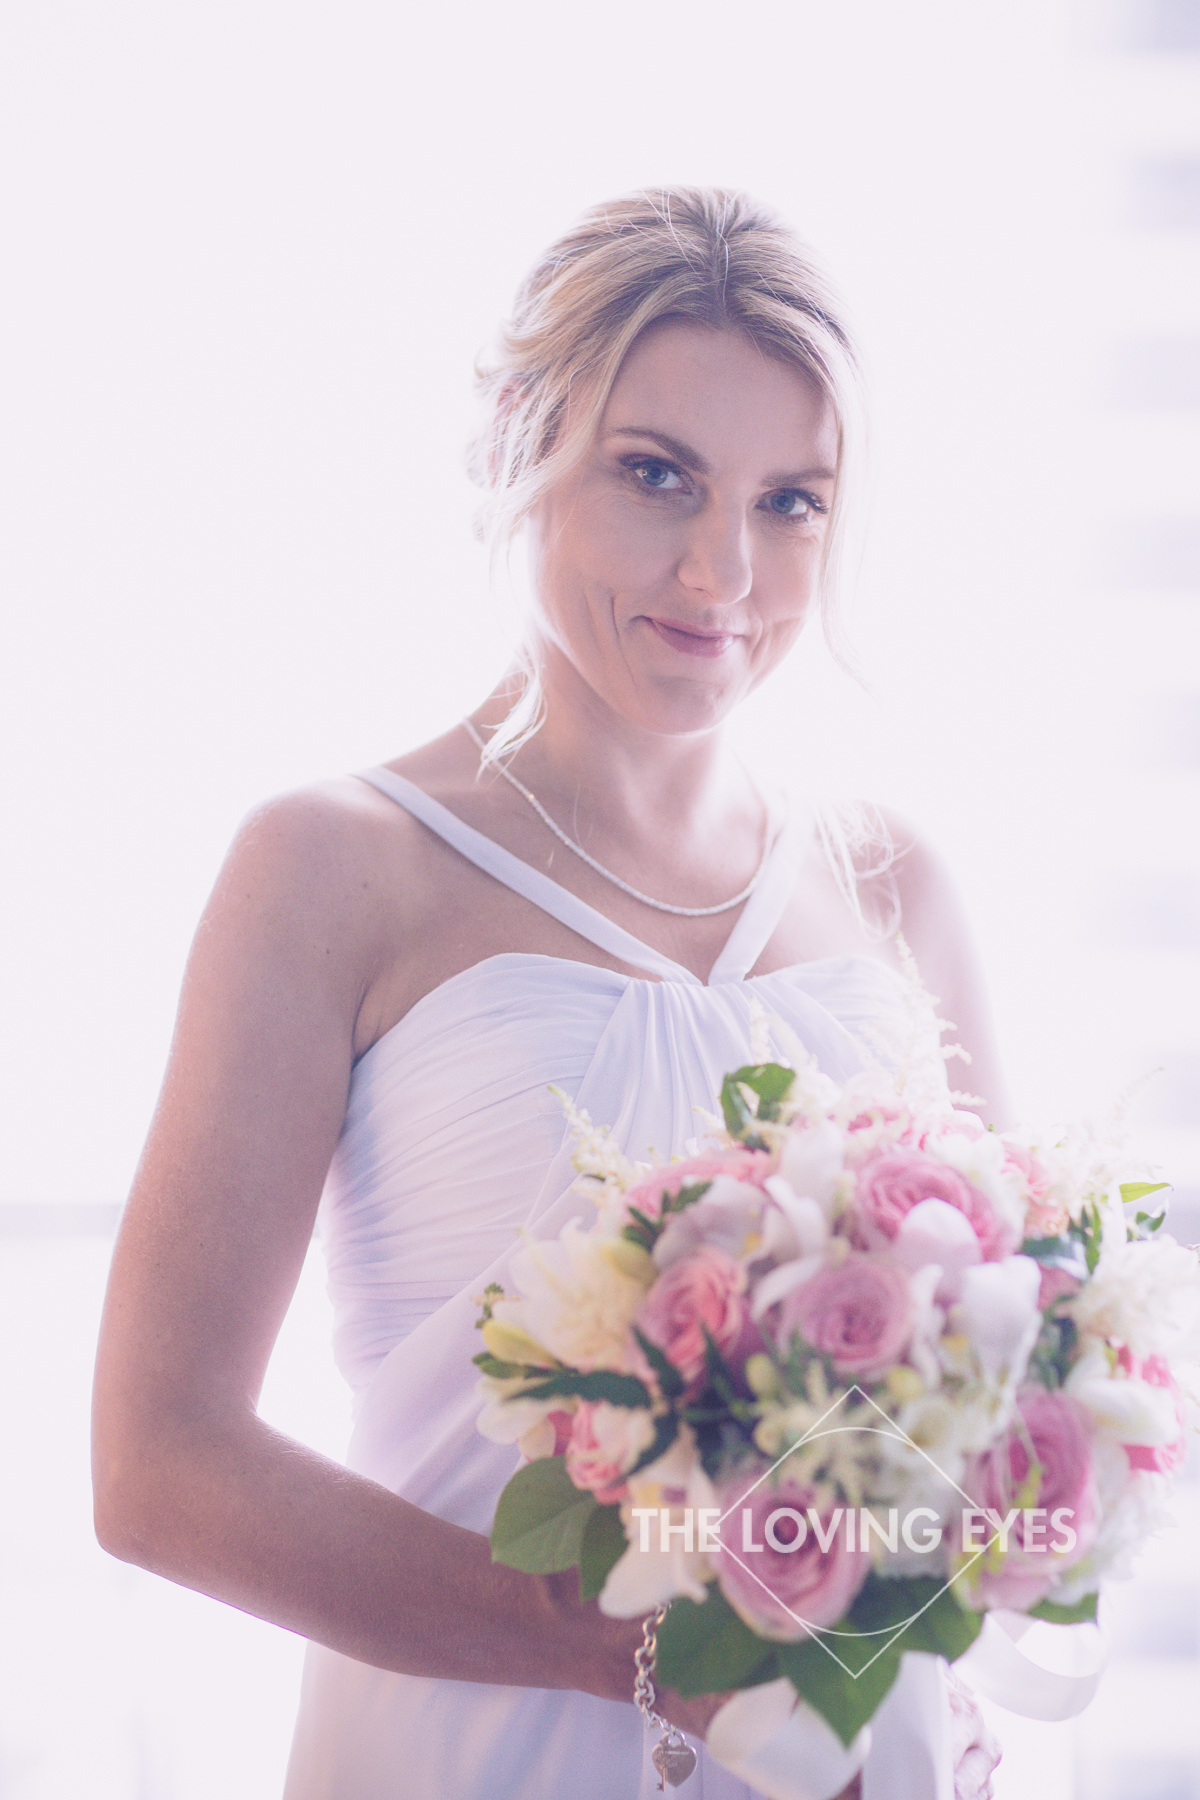 Bridal portrait with bouquet on wedding day in Hawaii